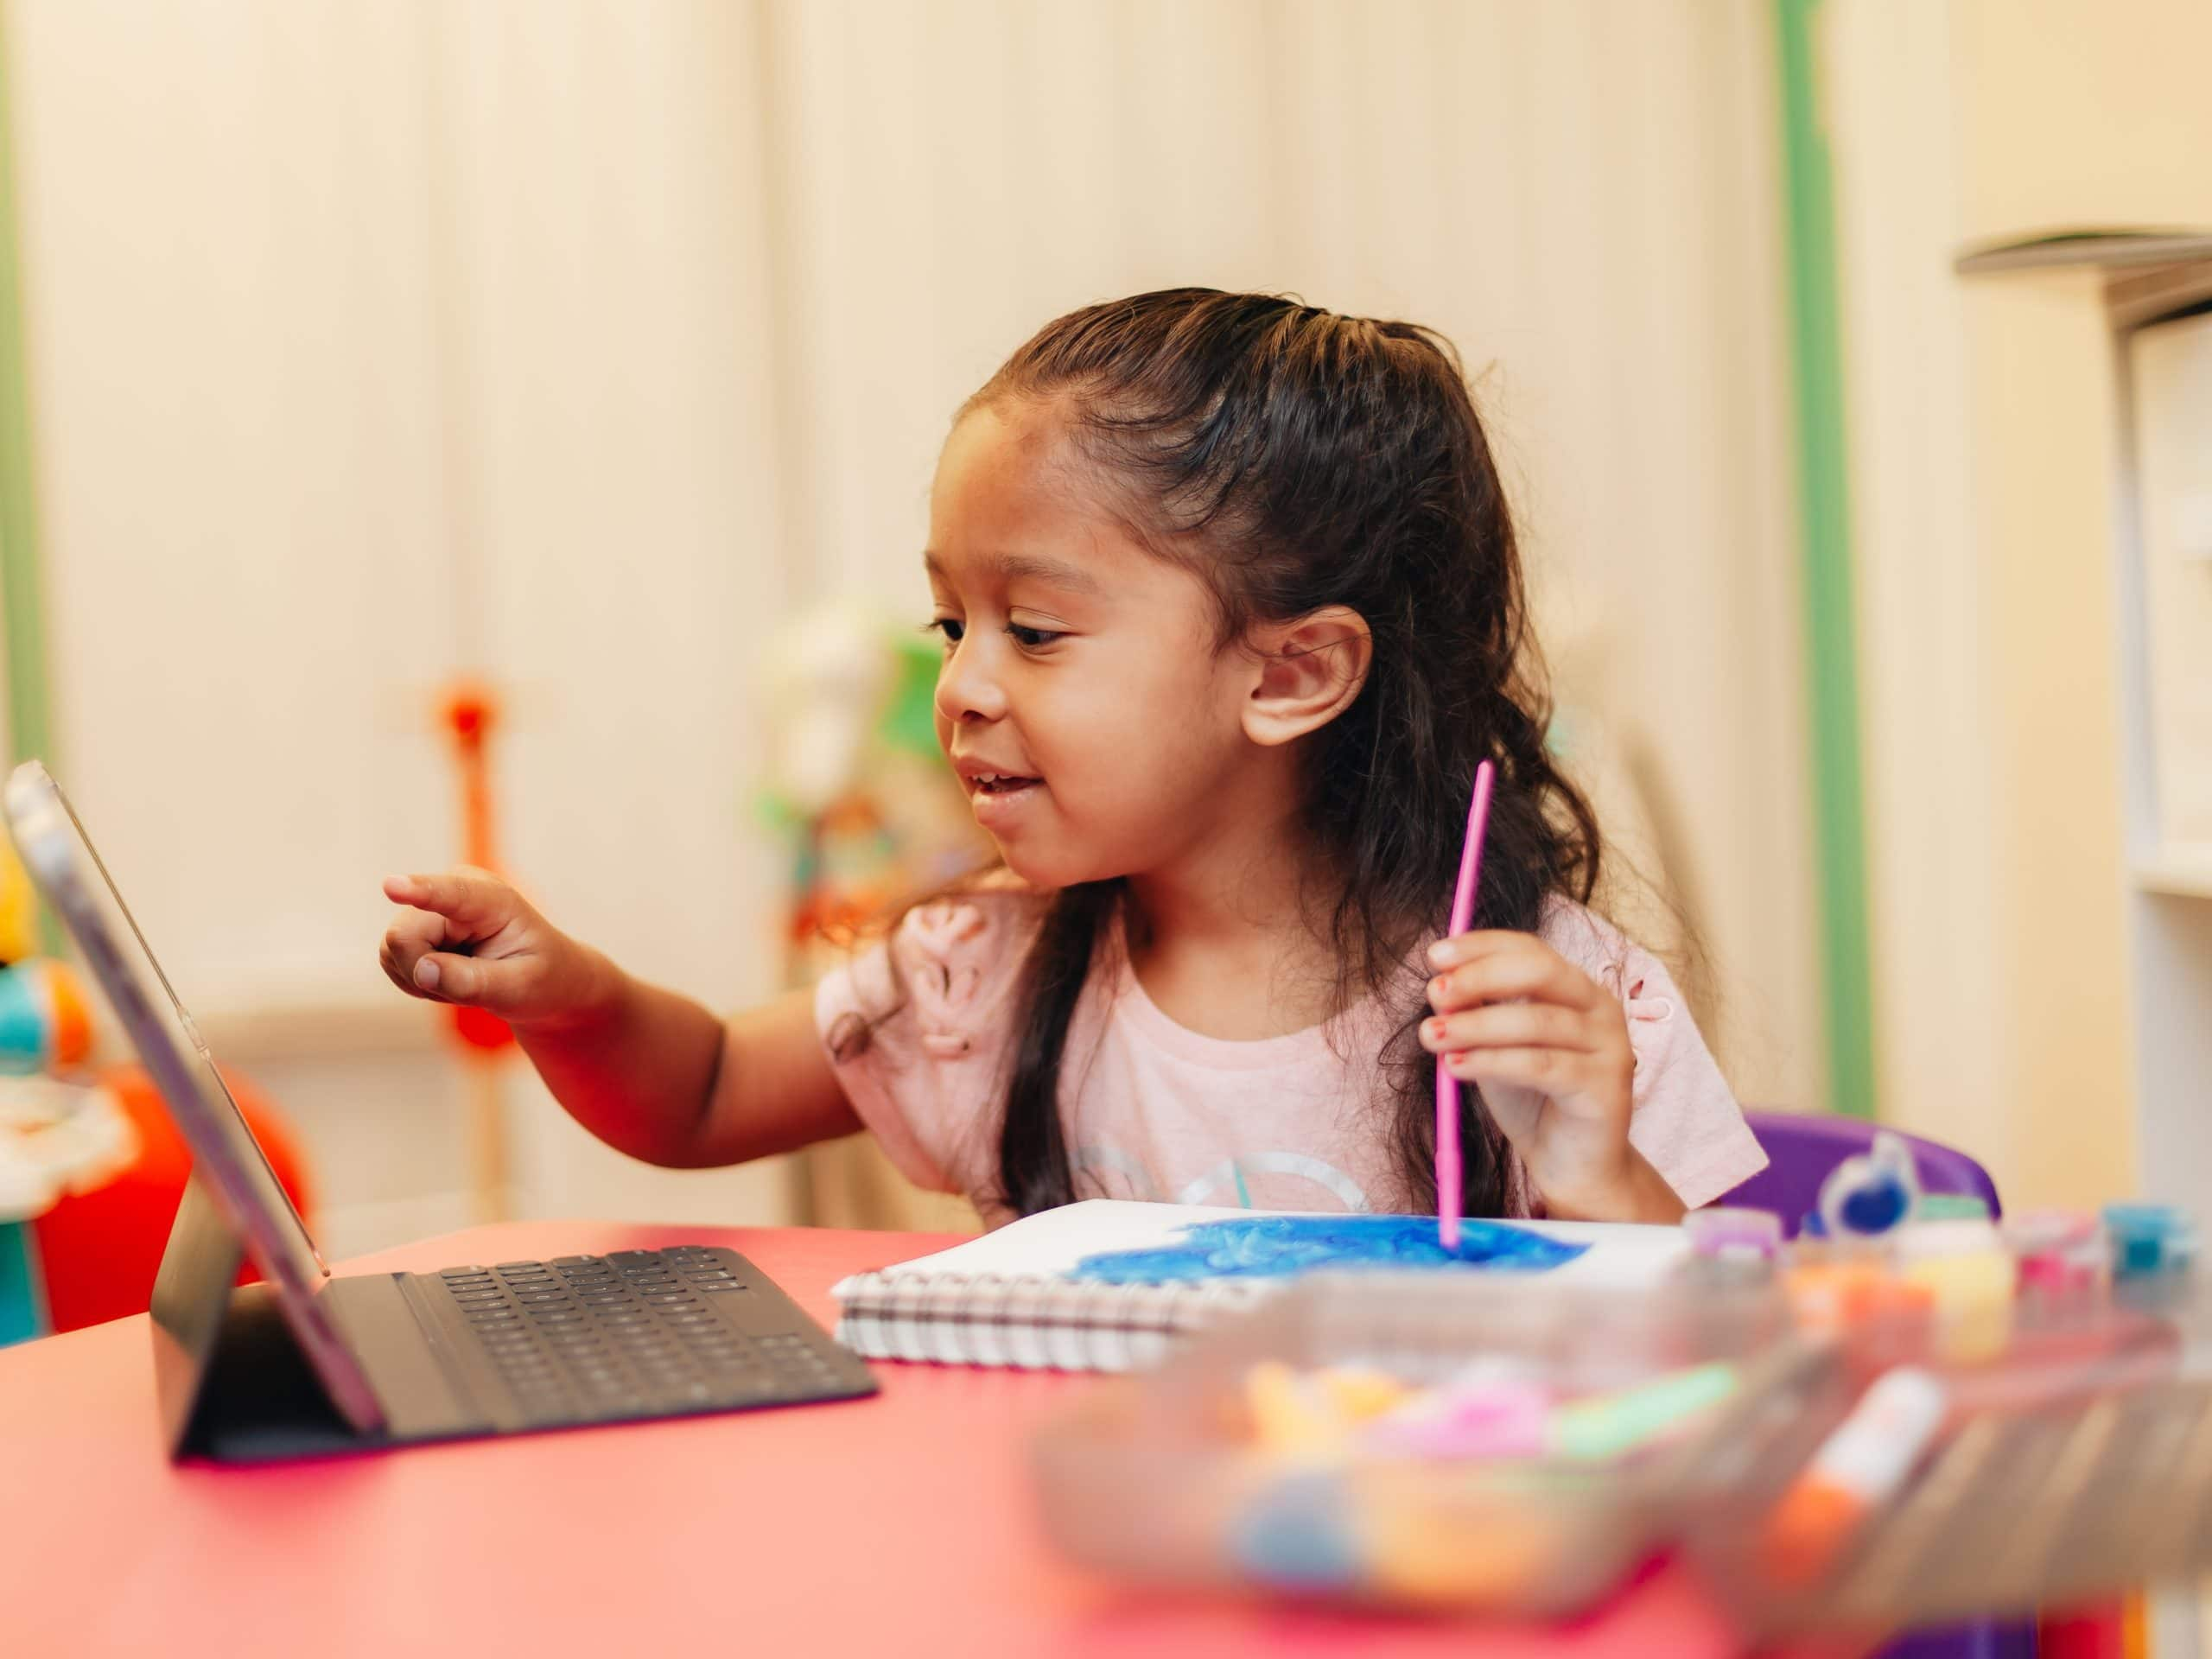 3-year-old-learning-to-paint-by-watching-video-on-laptop